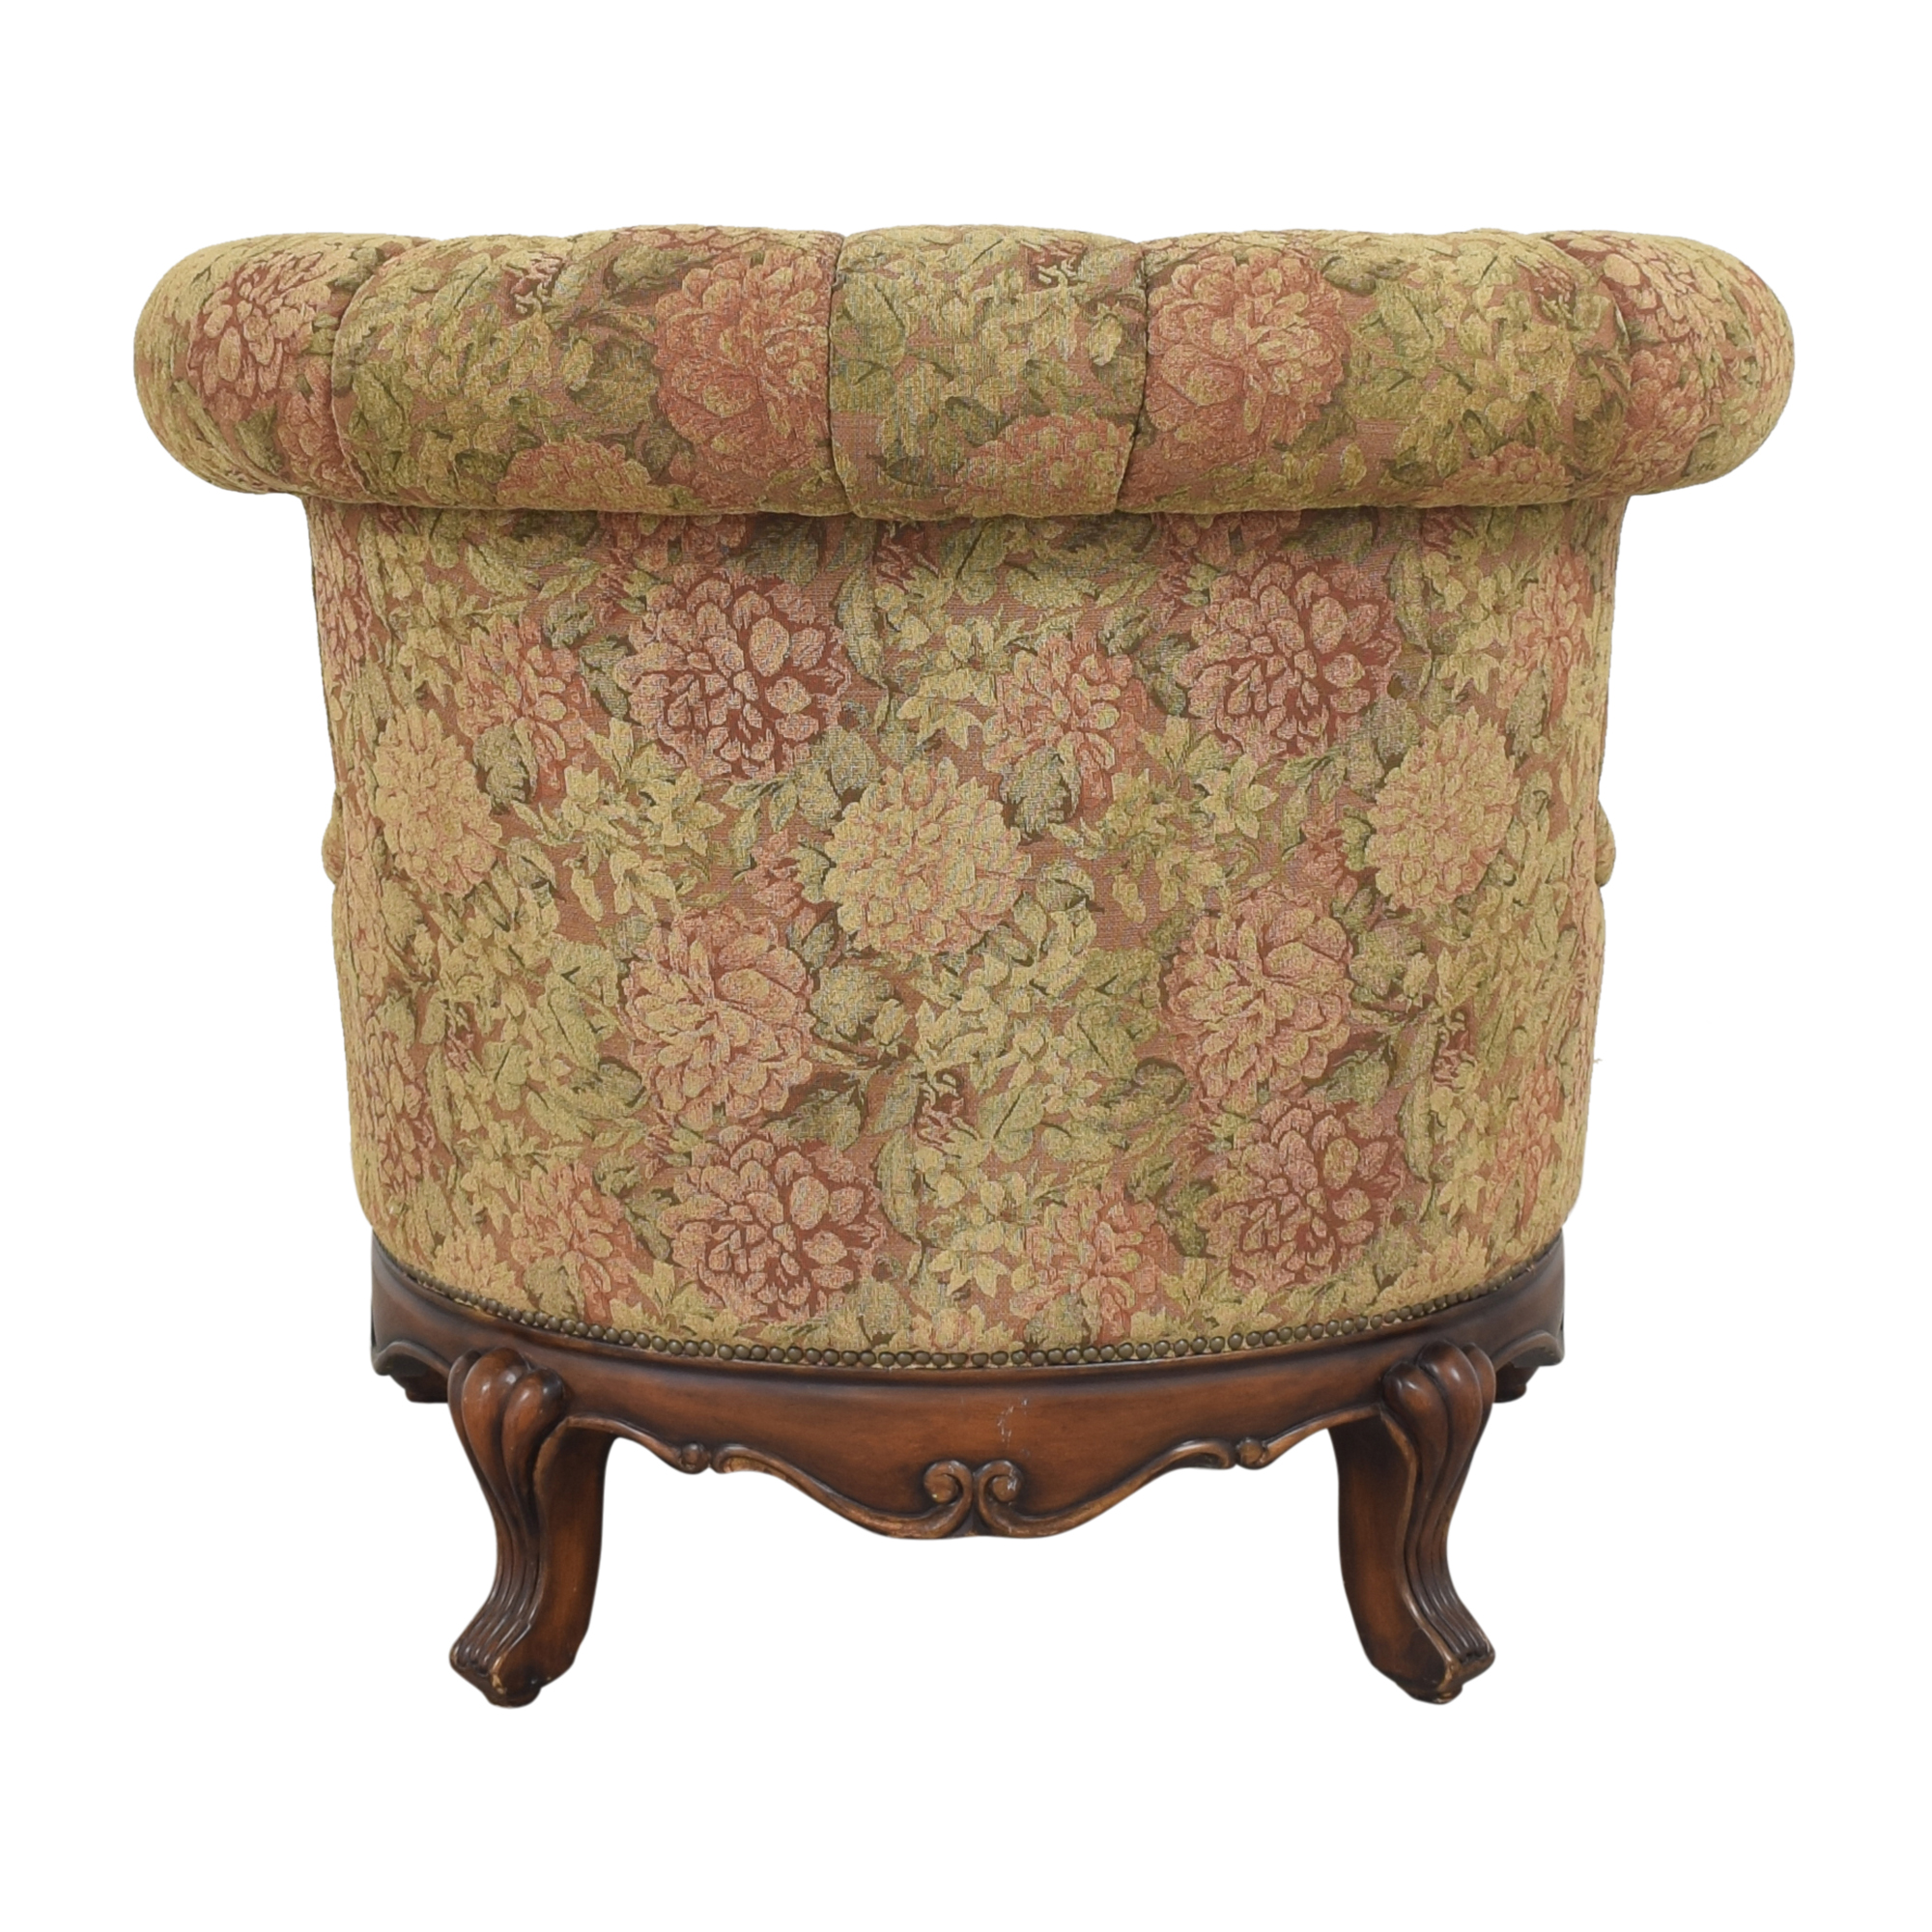 Schnadig Schnadig Compositions Bazille Chair on sale